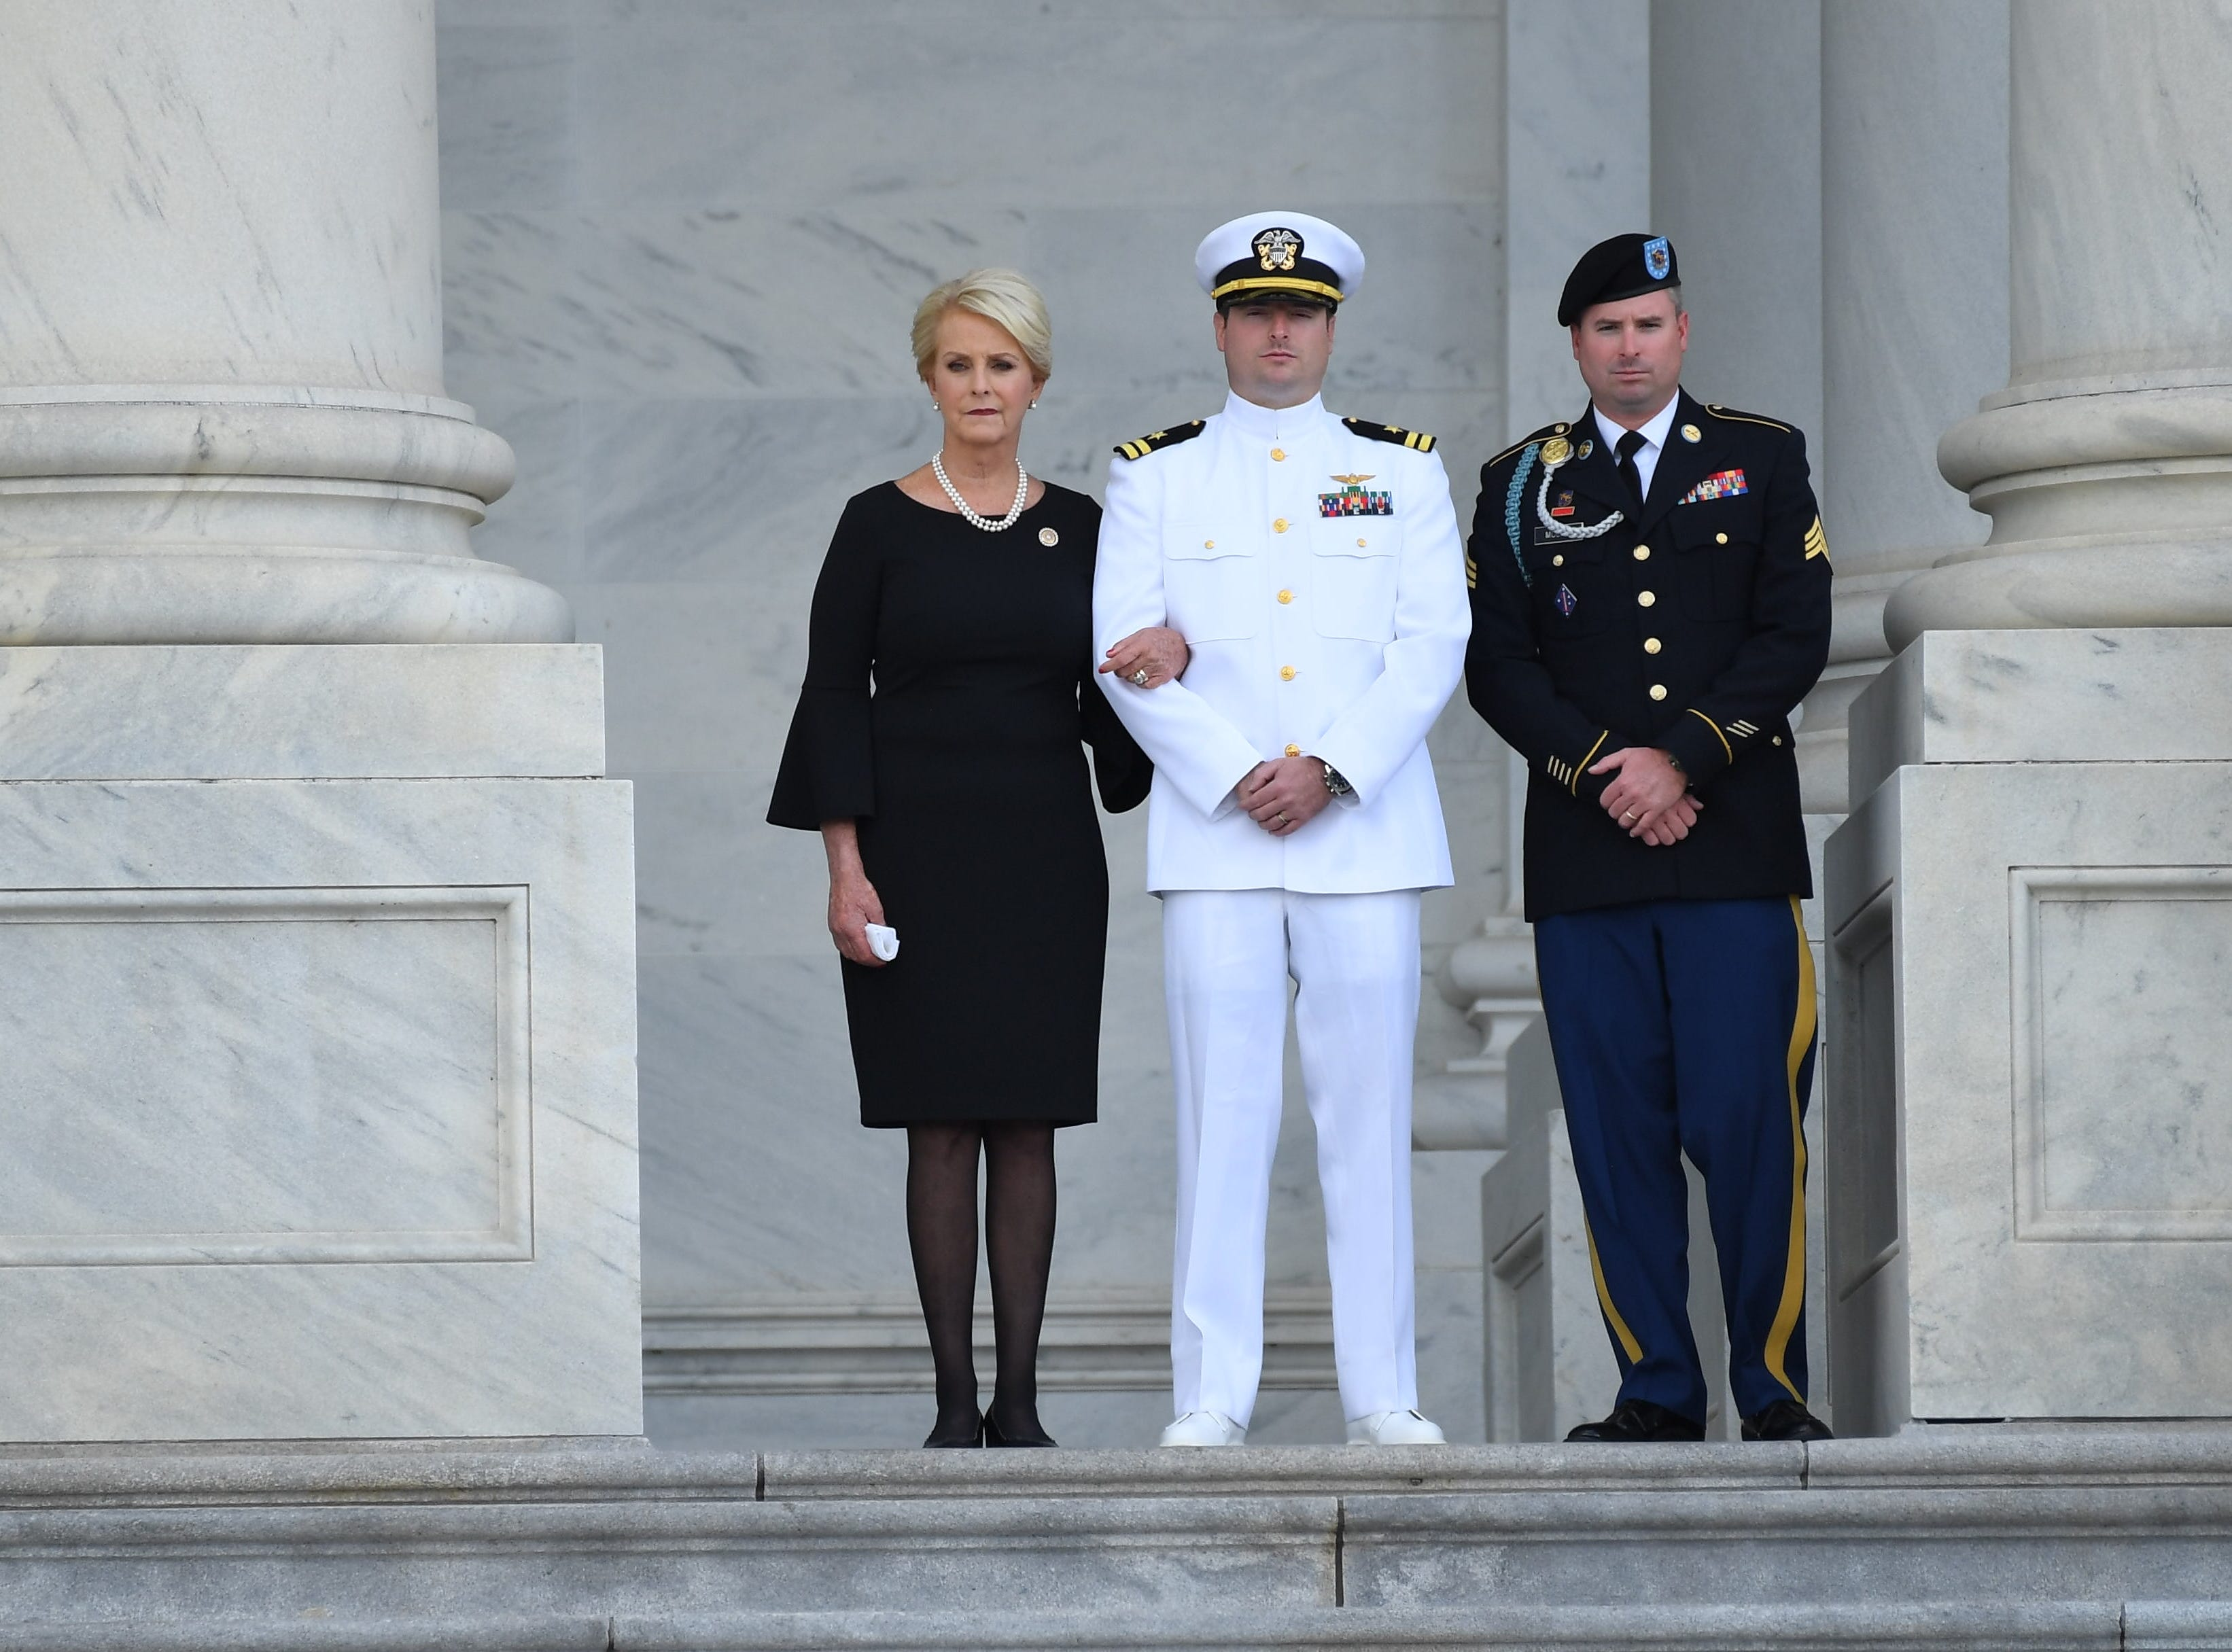 Cindy McCain, wife of Sen. John McCain, watches along with their two sons Jack and Jimmy McCain as his casket arrives at the U.S. Capitol in Washington on Aug. 31, 2018.